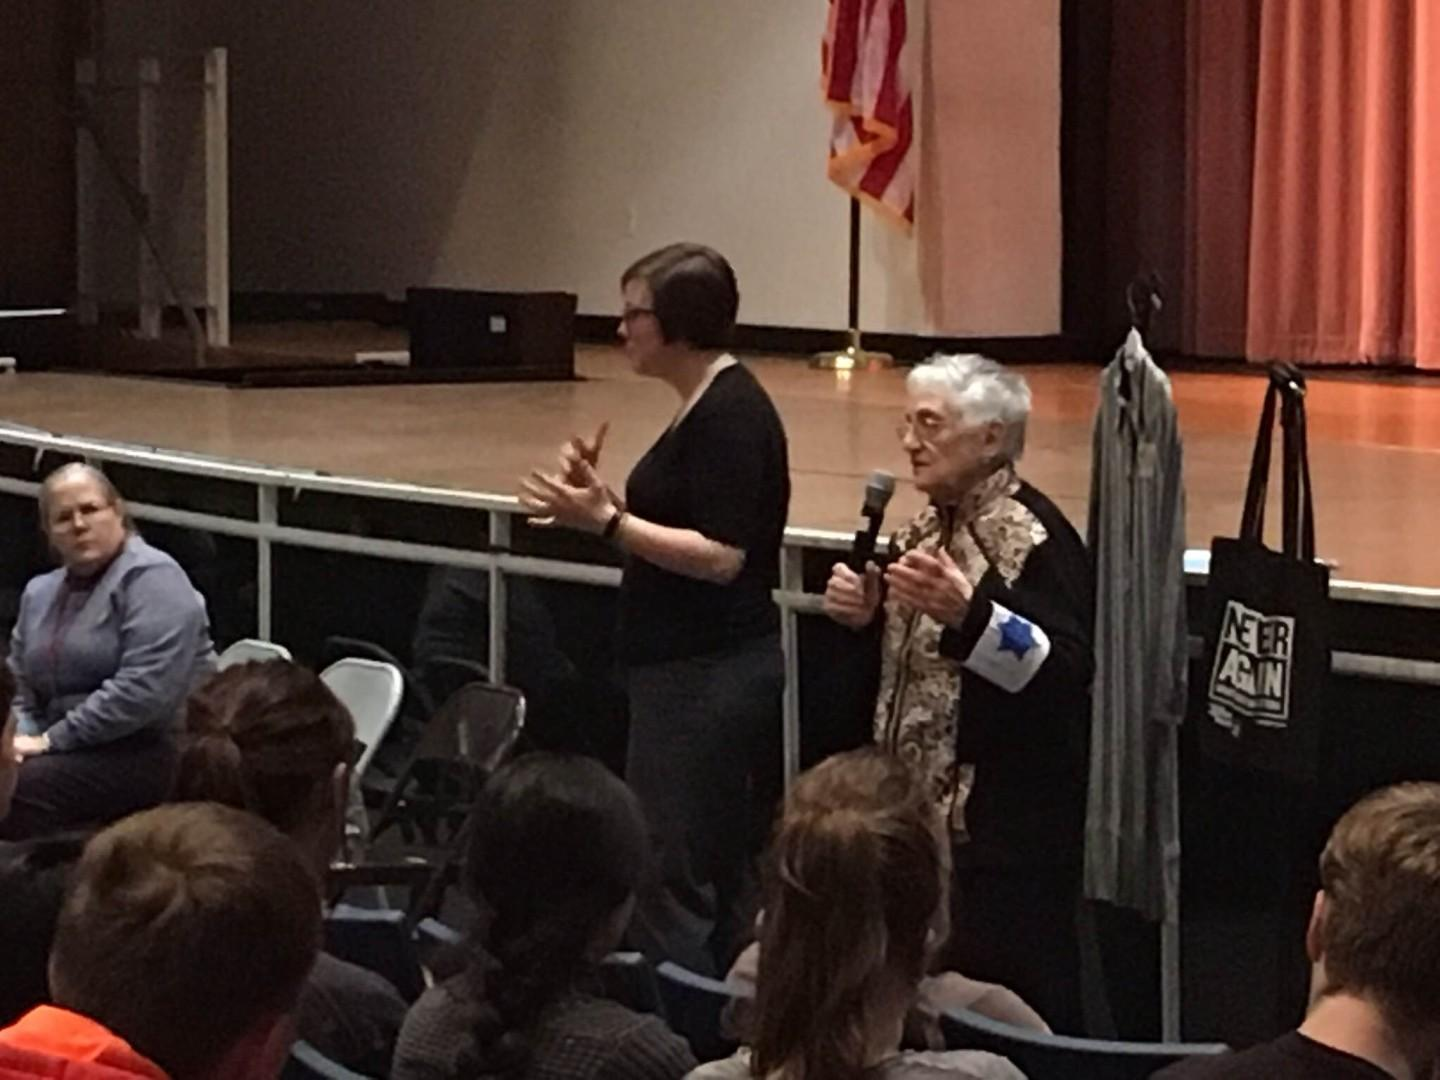 Holocaust survivor Edith Lowy (right) speaks to RHS students Feb. 23. She is wearing a replica of the Star of David armband she was forced to  wear in the Wieliczka ghetto. To her right are a replica of a concentration camp prisoner's outfit and a tote bag from the United States Holocaust Memorial Museum that reads